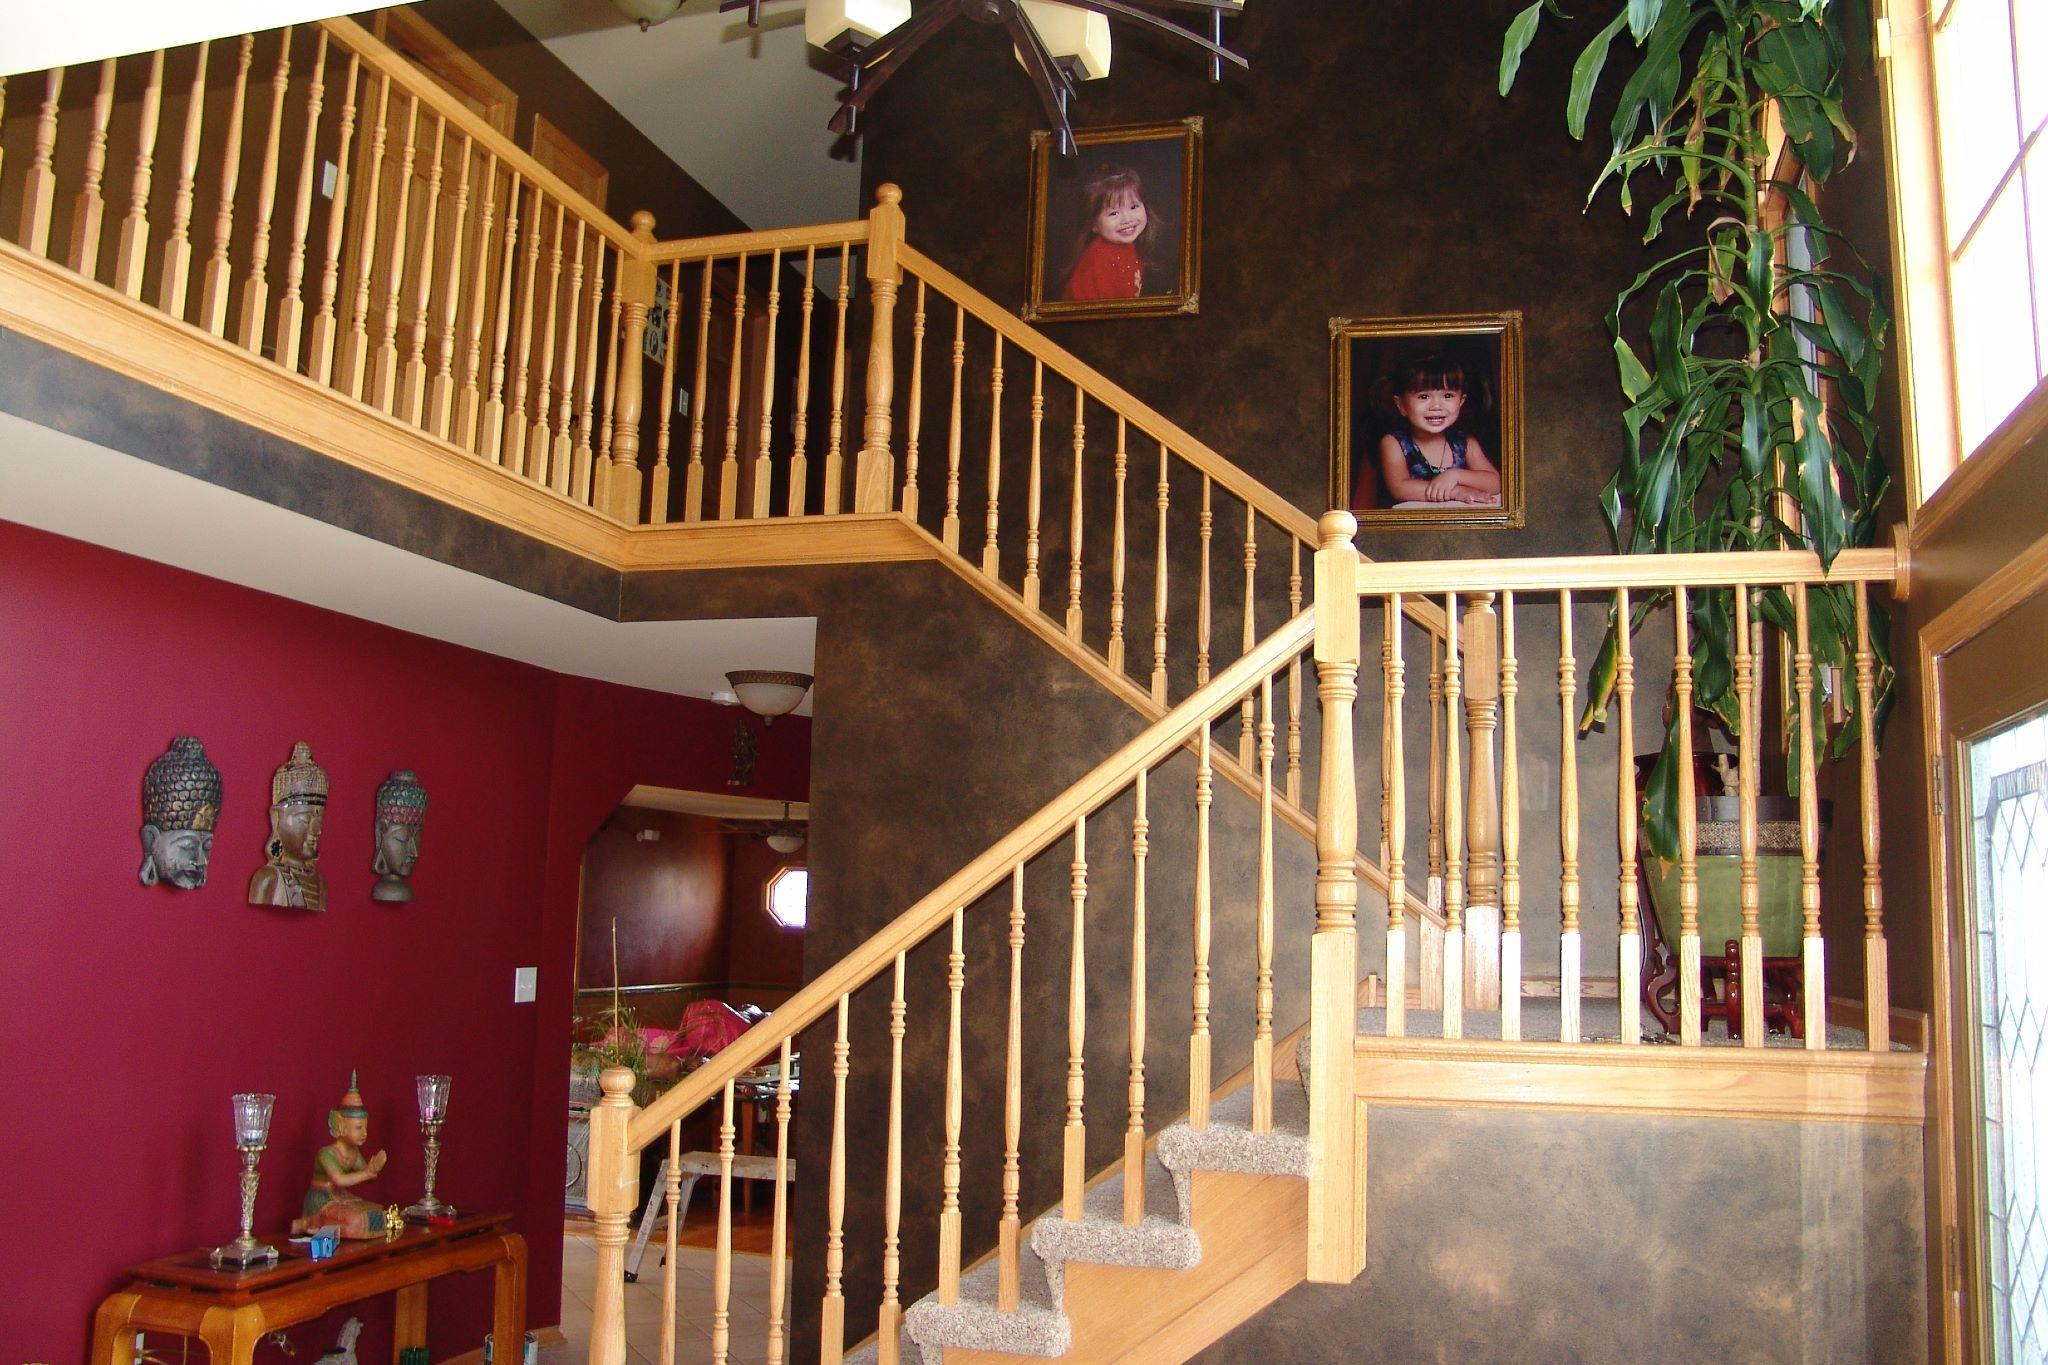 Ann Art Faux Finishes image 11